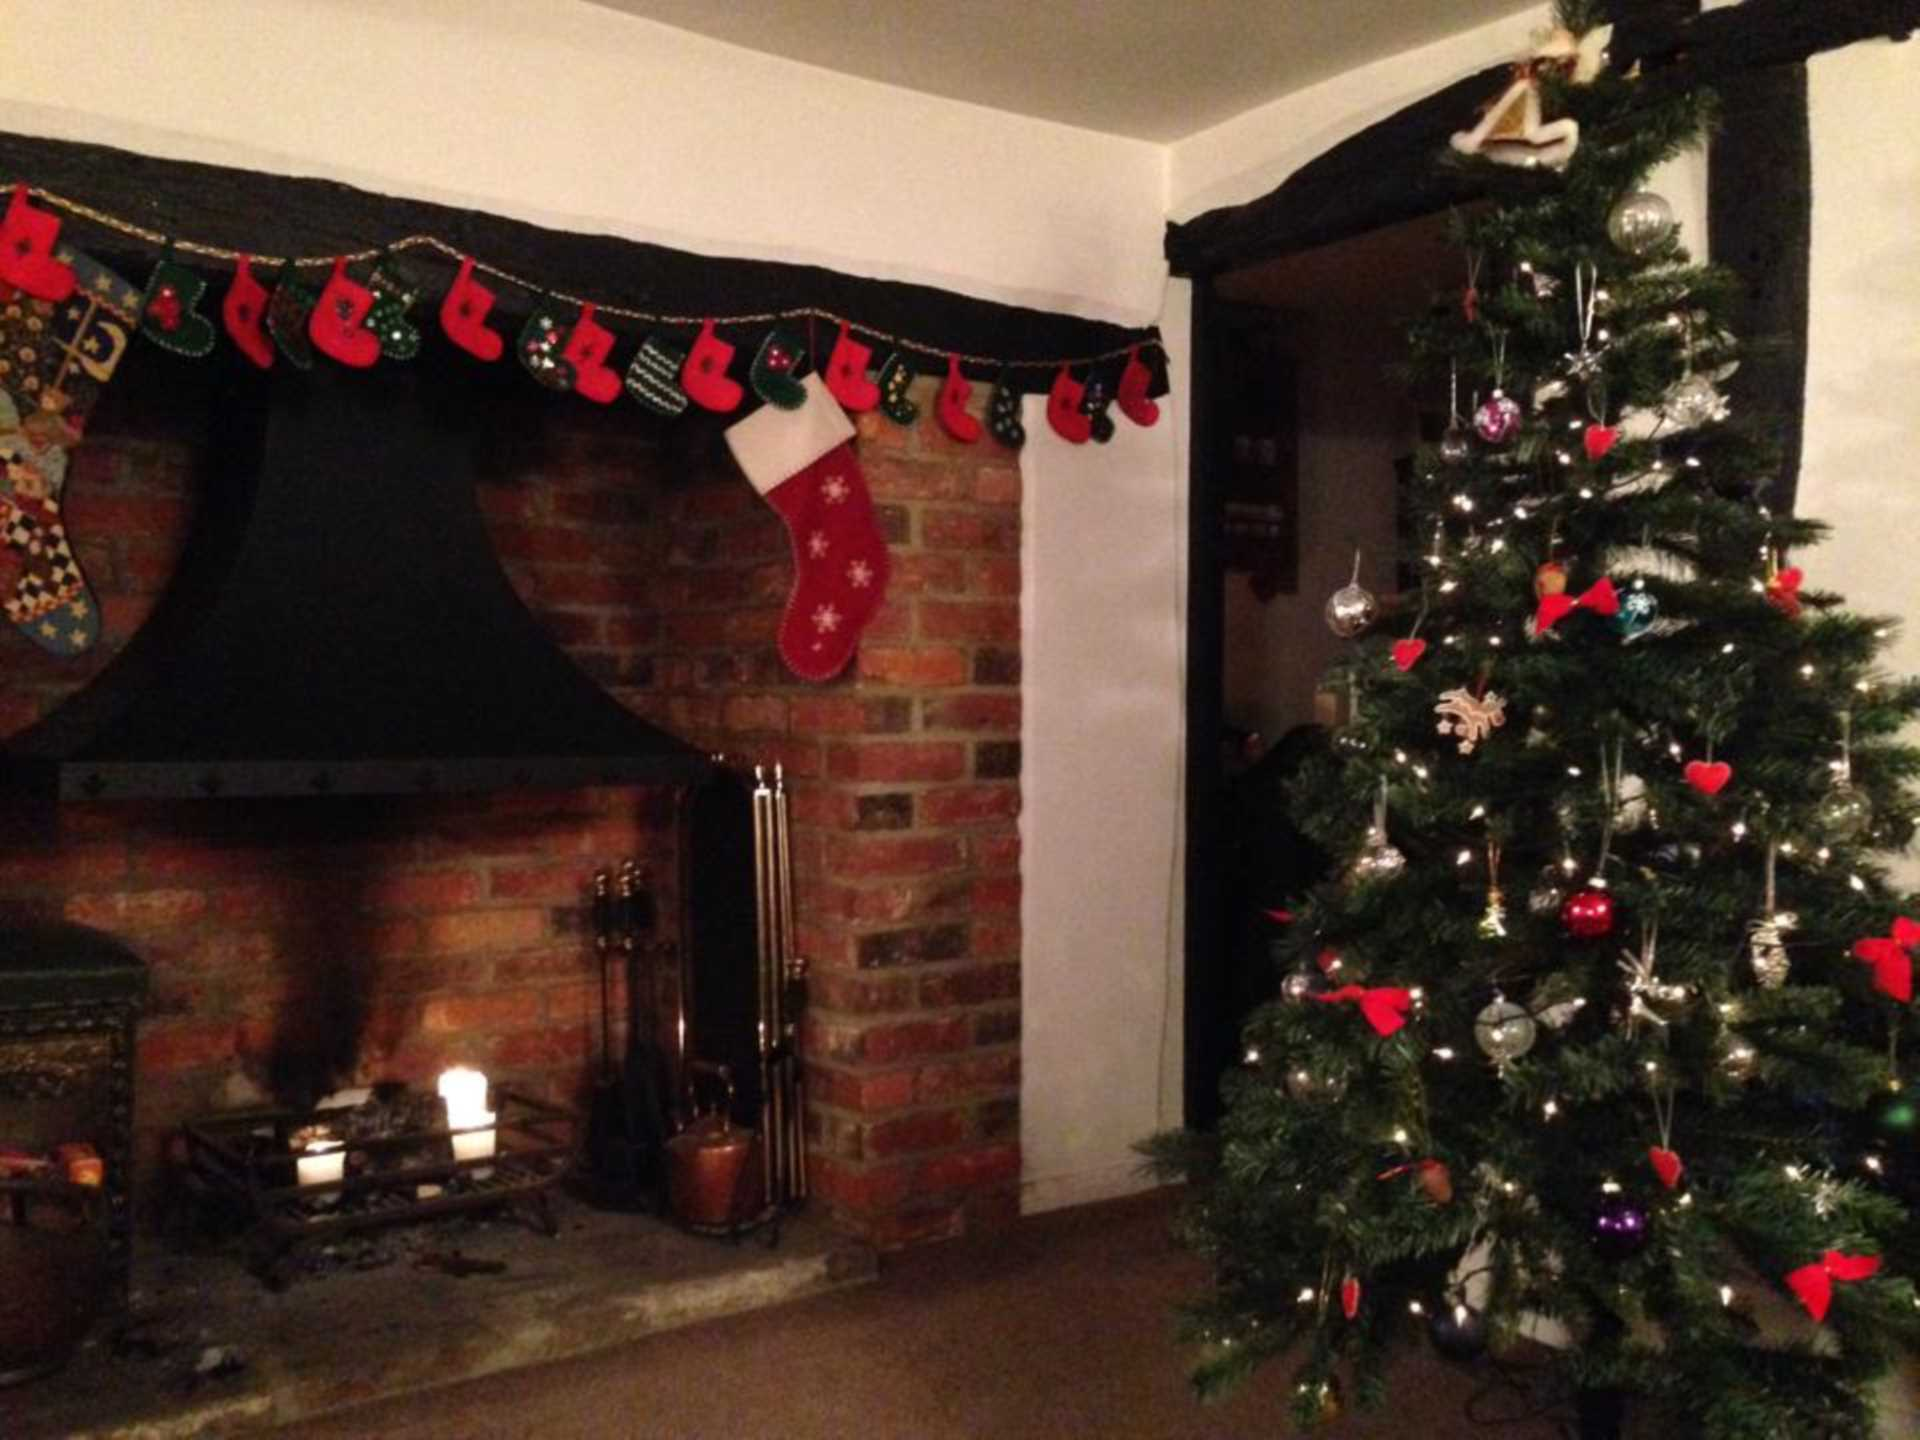 Why is it a good idea to put your house on the market over Christmas/New Year?